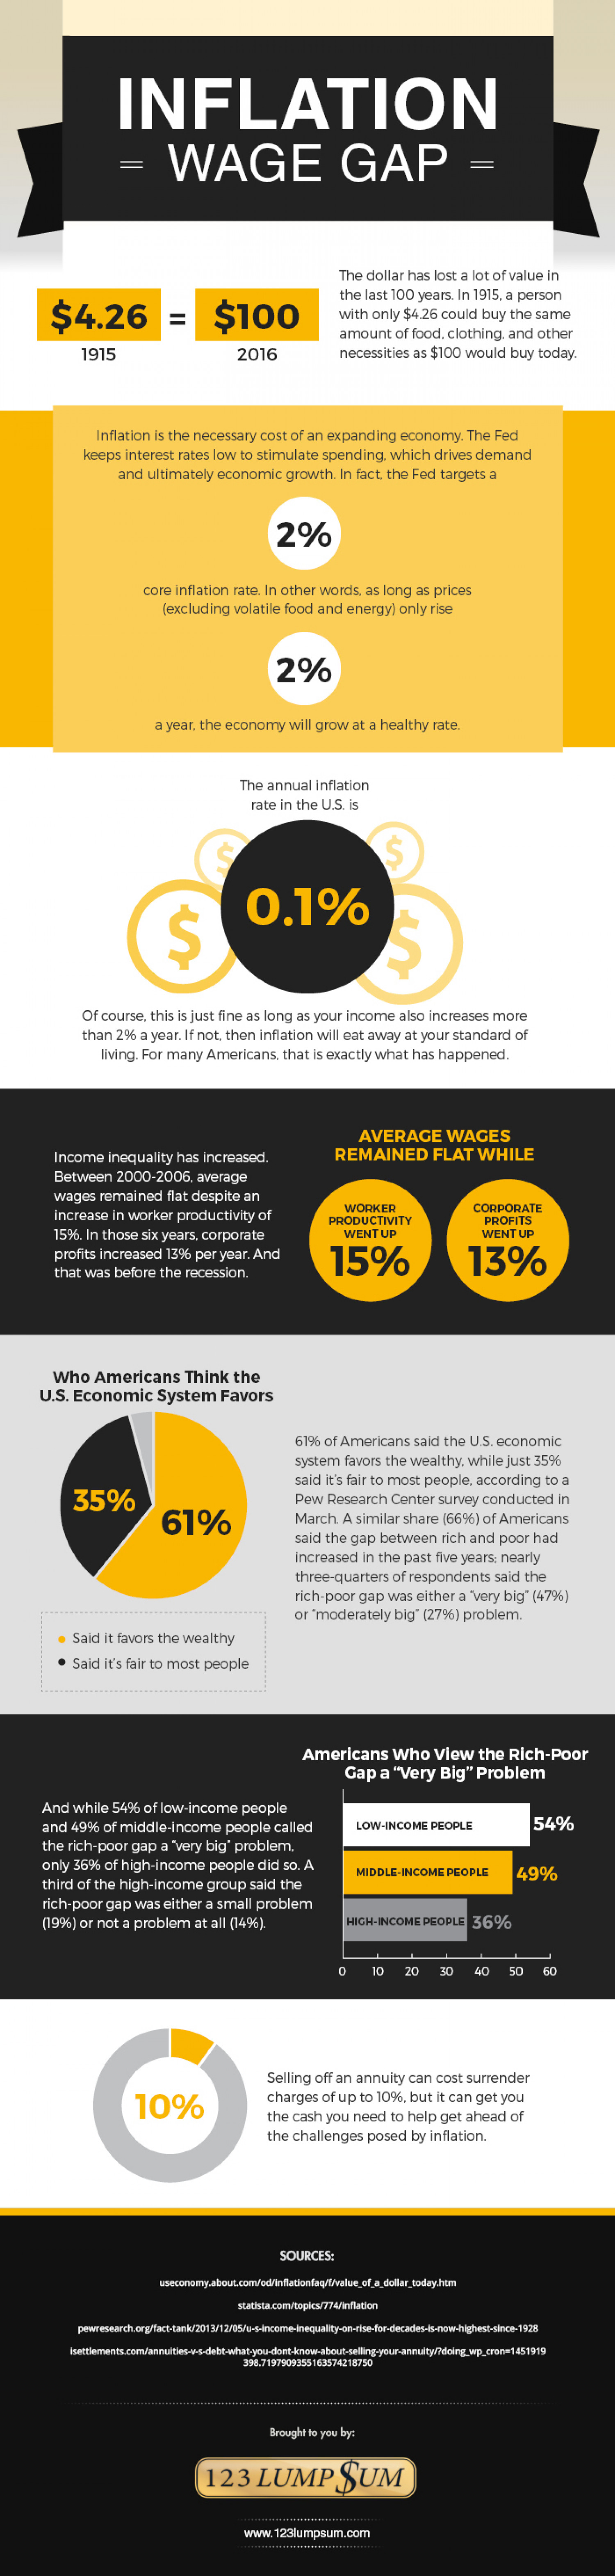 Inflation Wage Gap Infographic